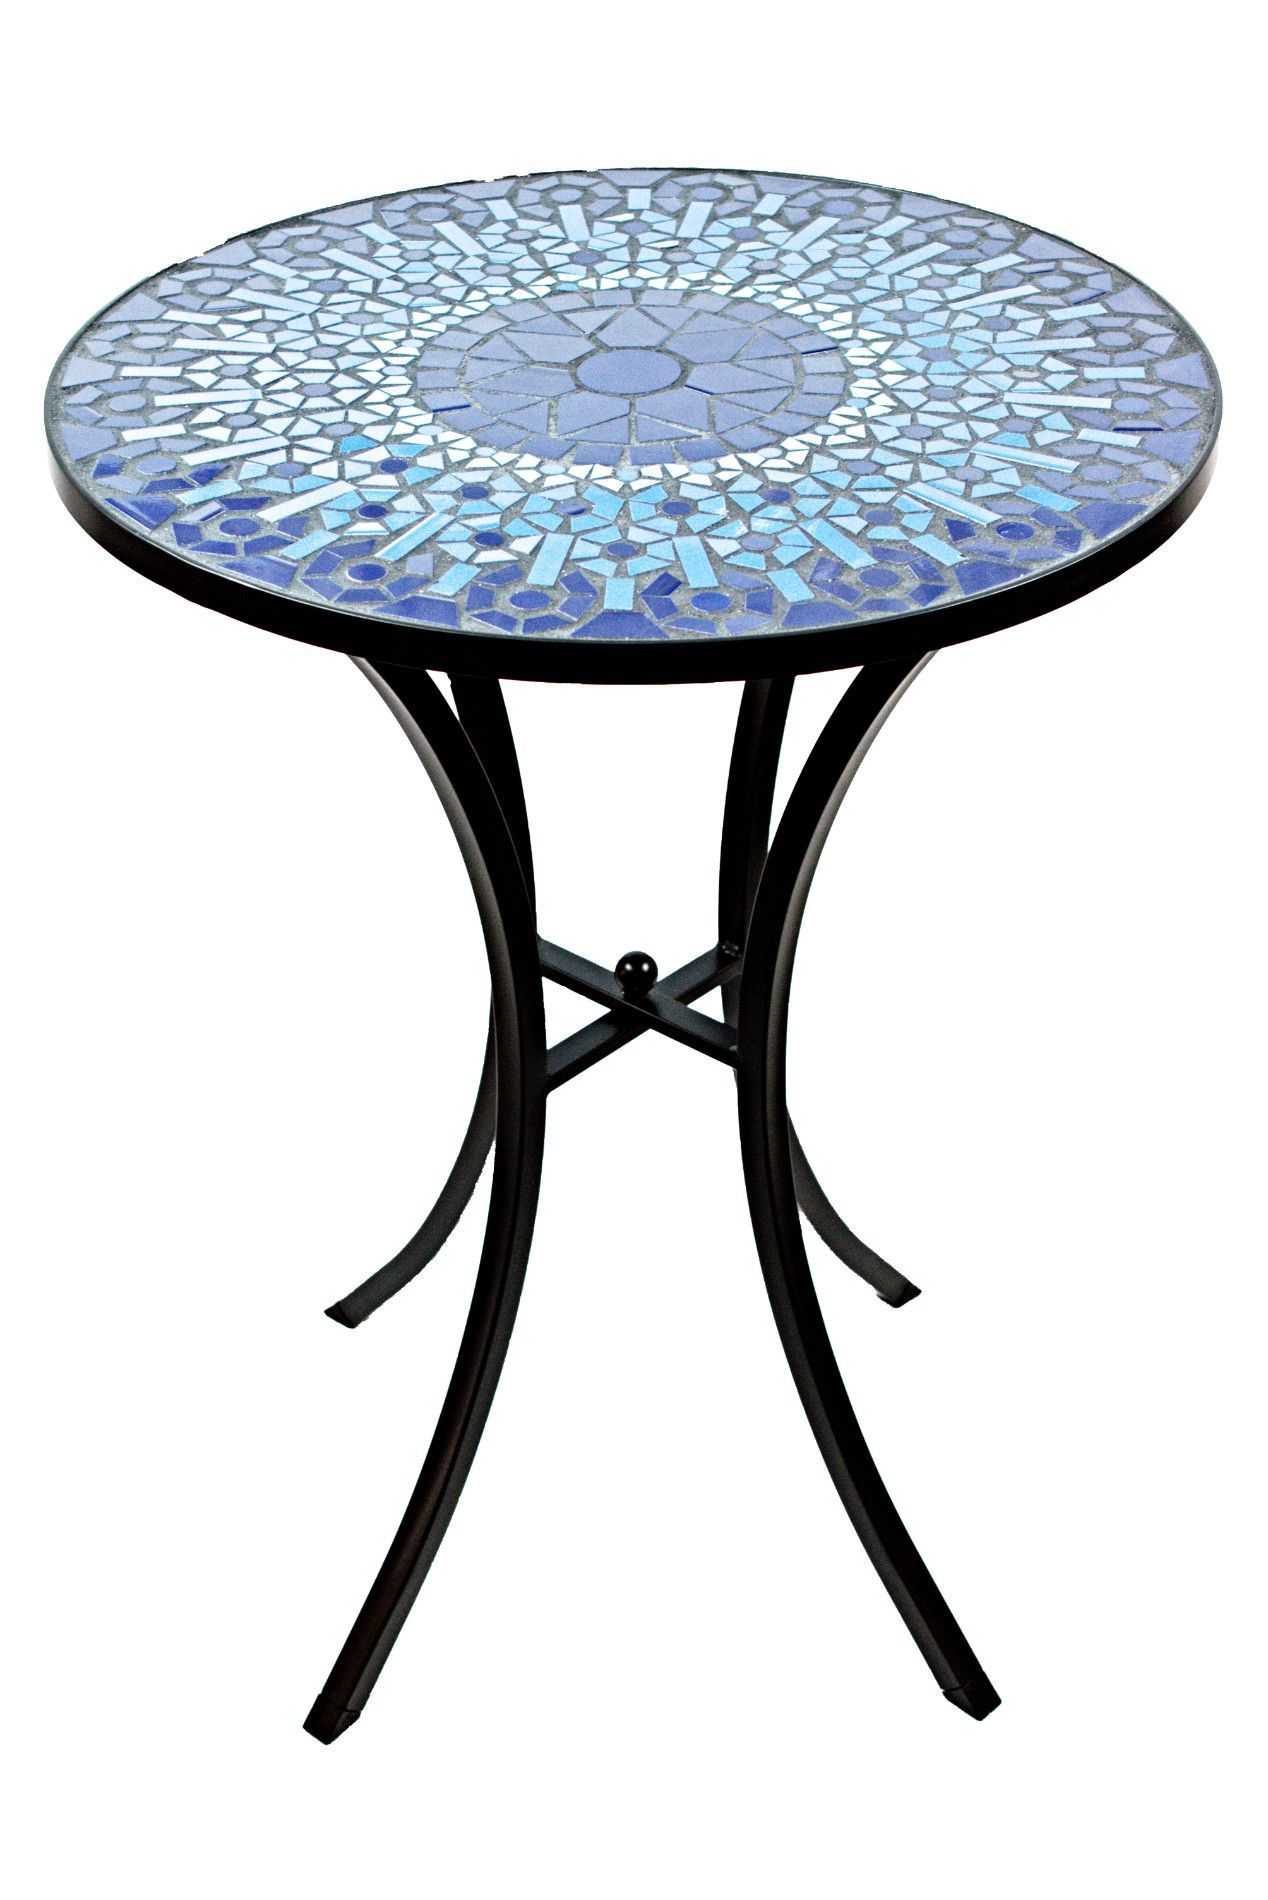 table chantel awesome ceramic outdoor top patio side tables moroccan astonishing mosaic tile small blue mexican accent full size gold color coffee pedestal lamp cream rectangular